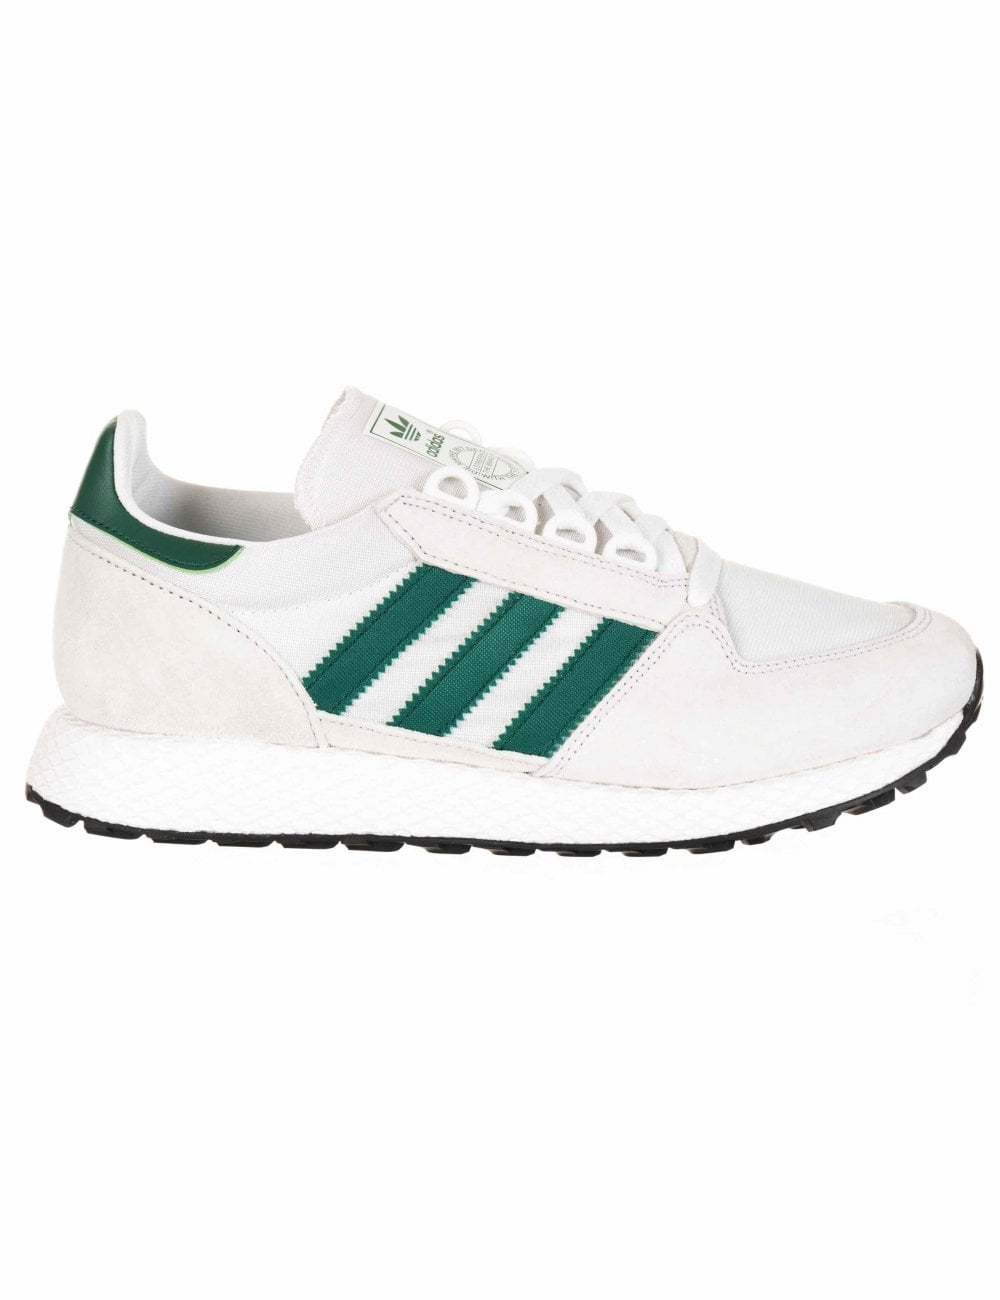 Forest Grove Trainers Crystal WhiteCollegiate Green